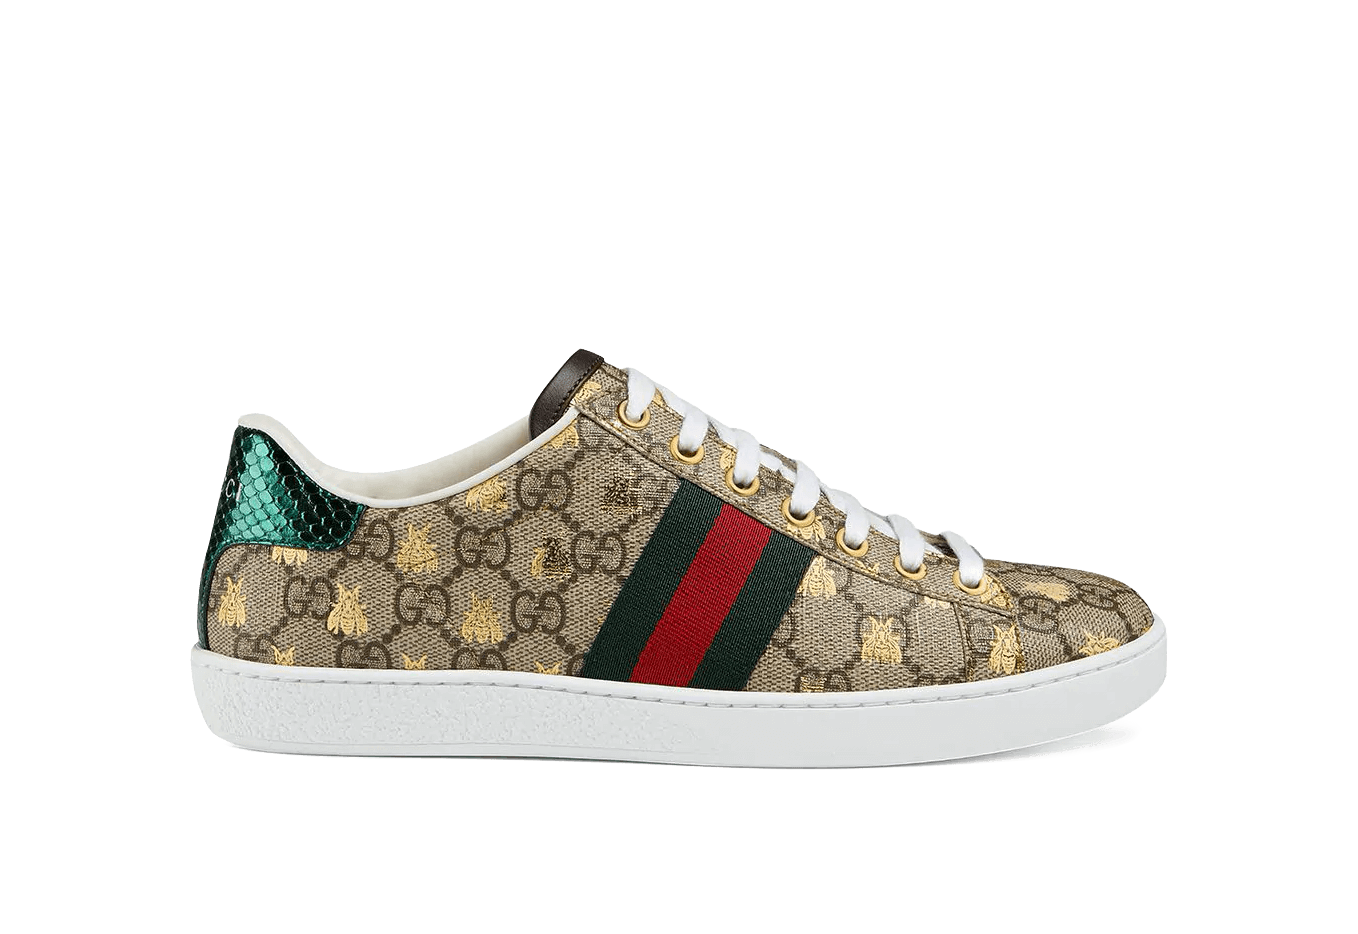 For sale the best Gucci     Supreme With Bees